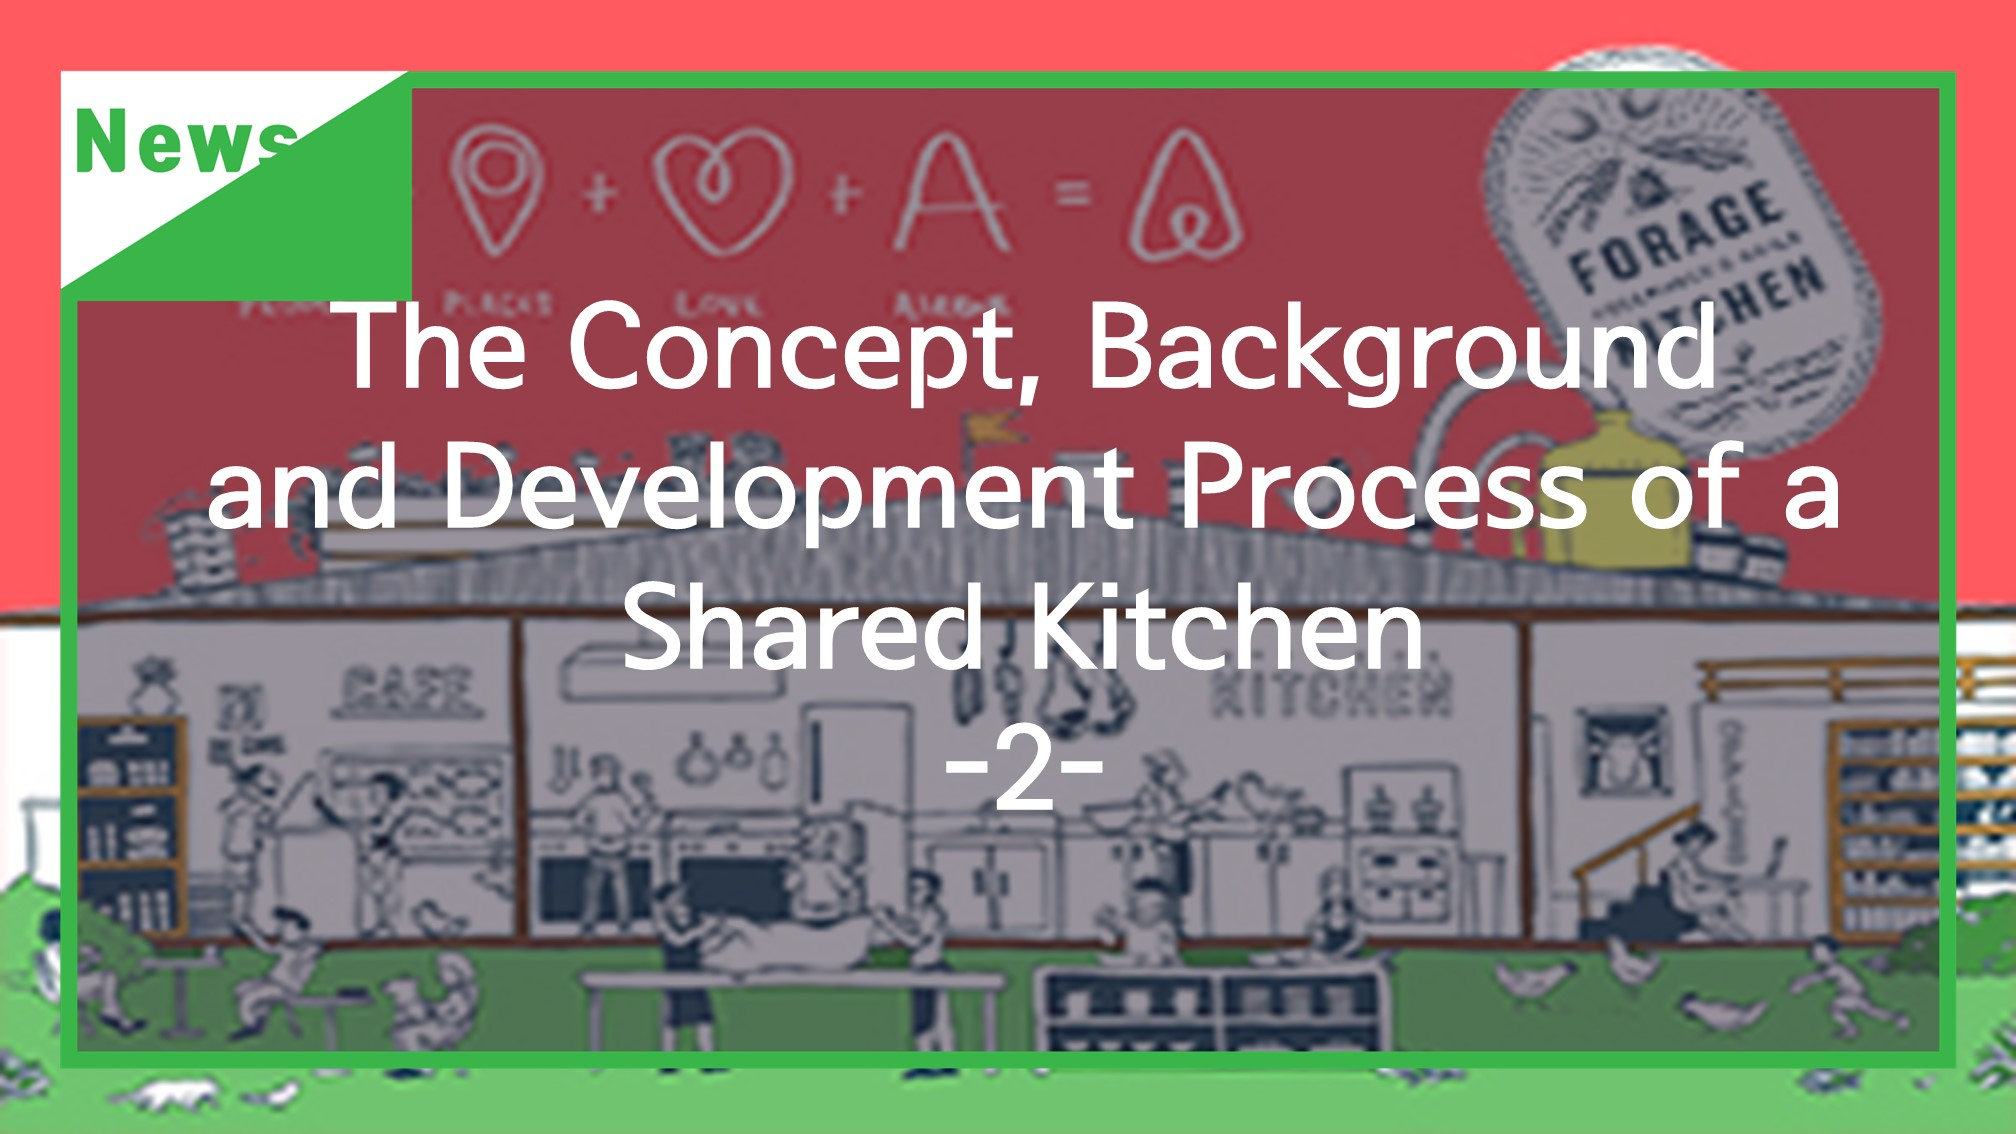 [News] The Concept, Background and Development Process of a Shared Kitchen -2